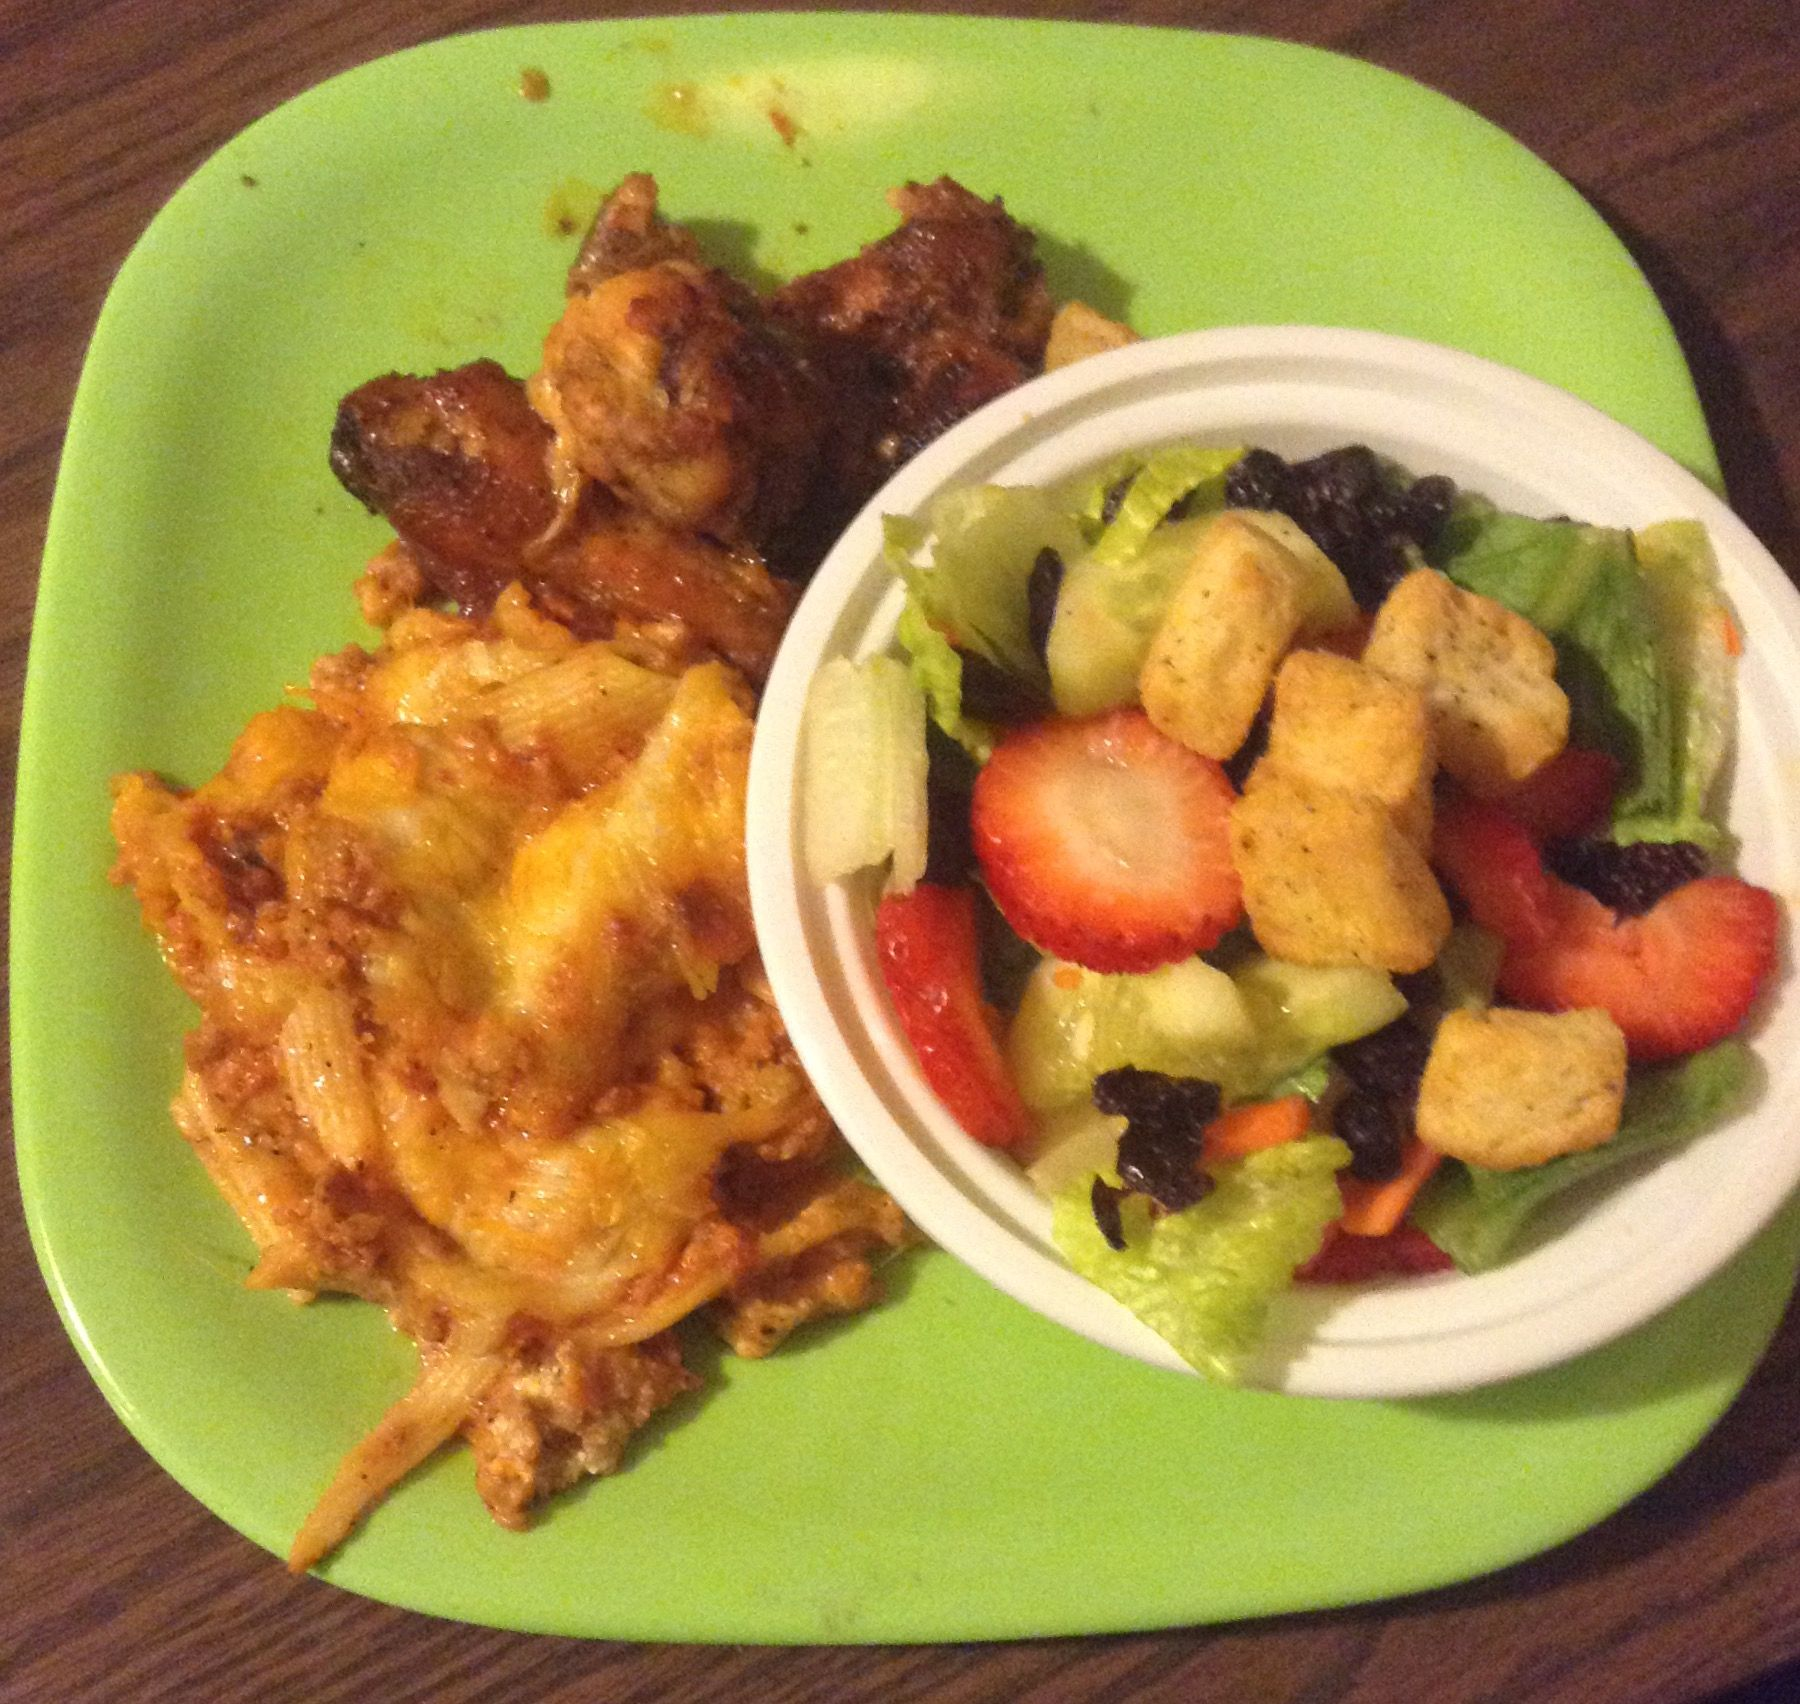 Blueberry & strawberry salad with baked zitiand sweet chili hit wings